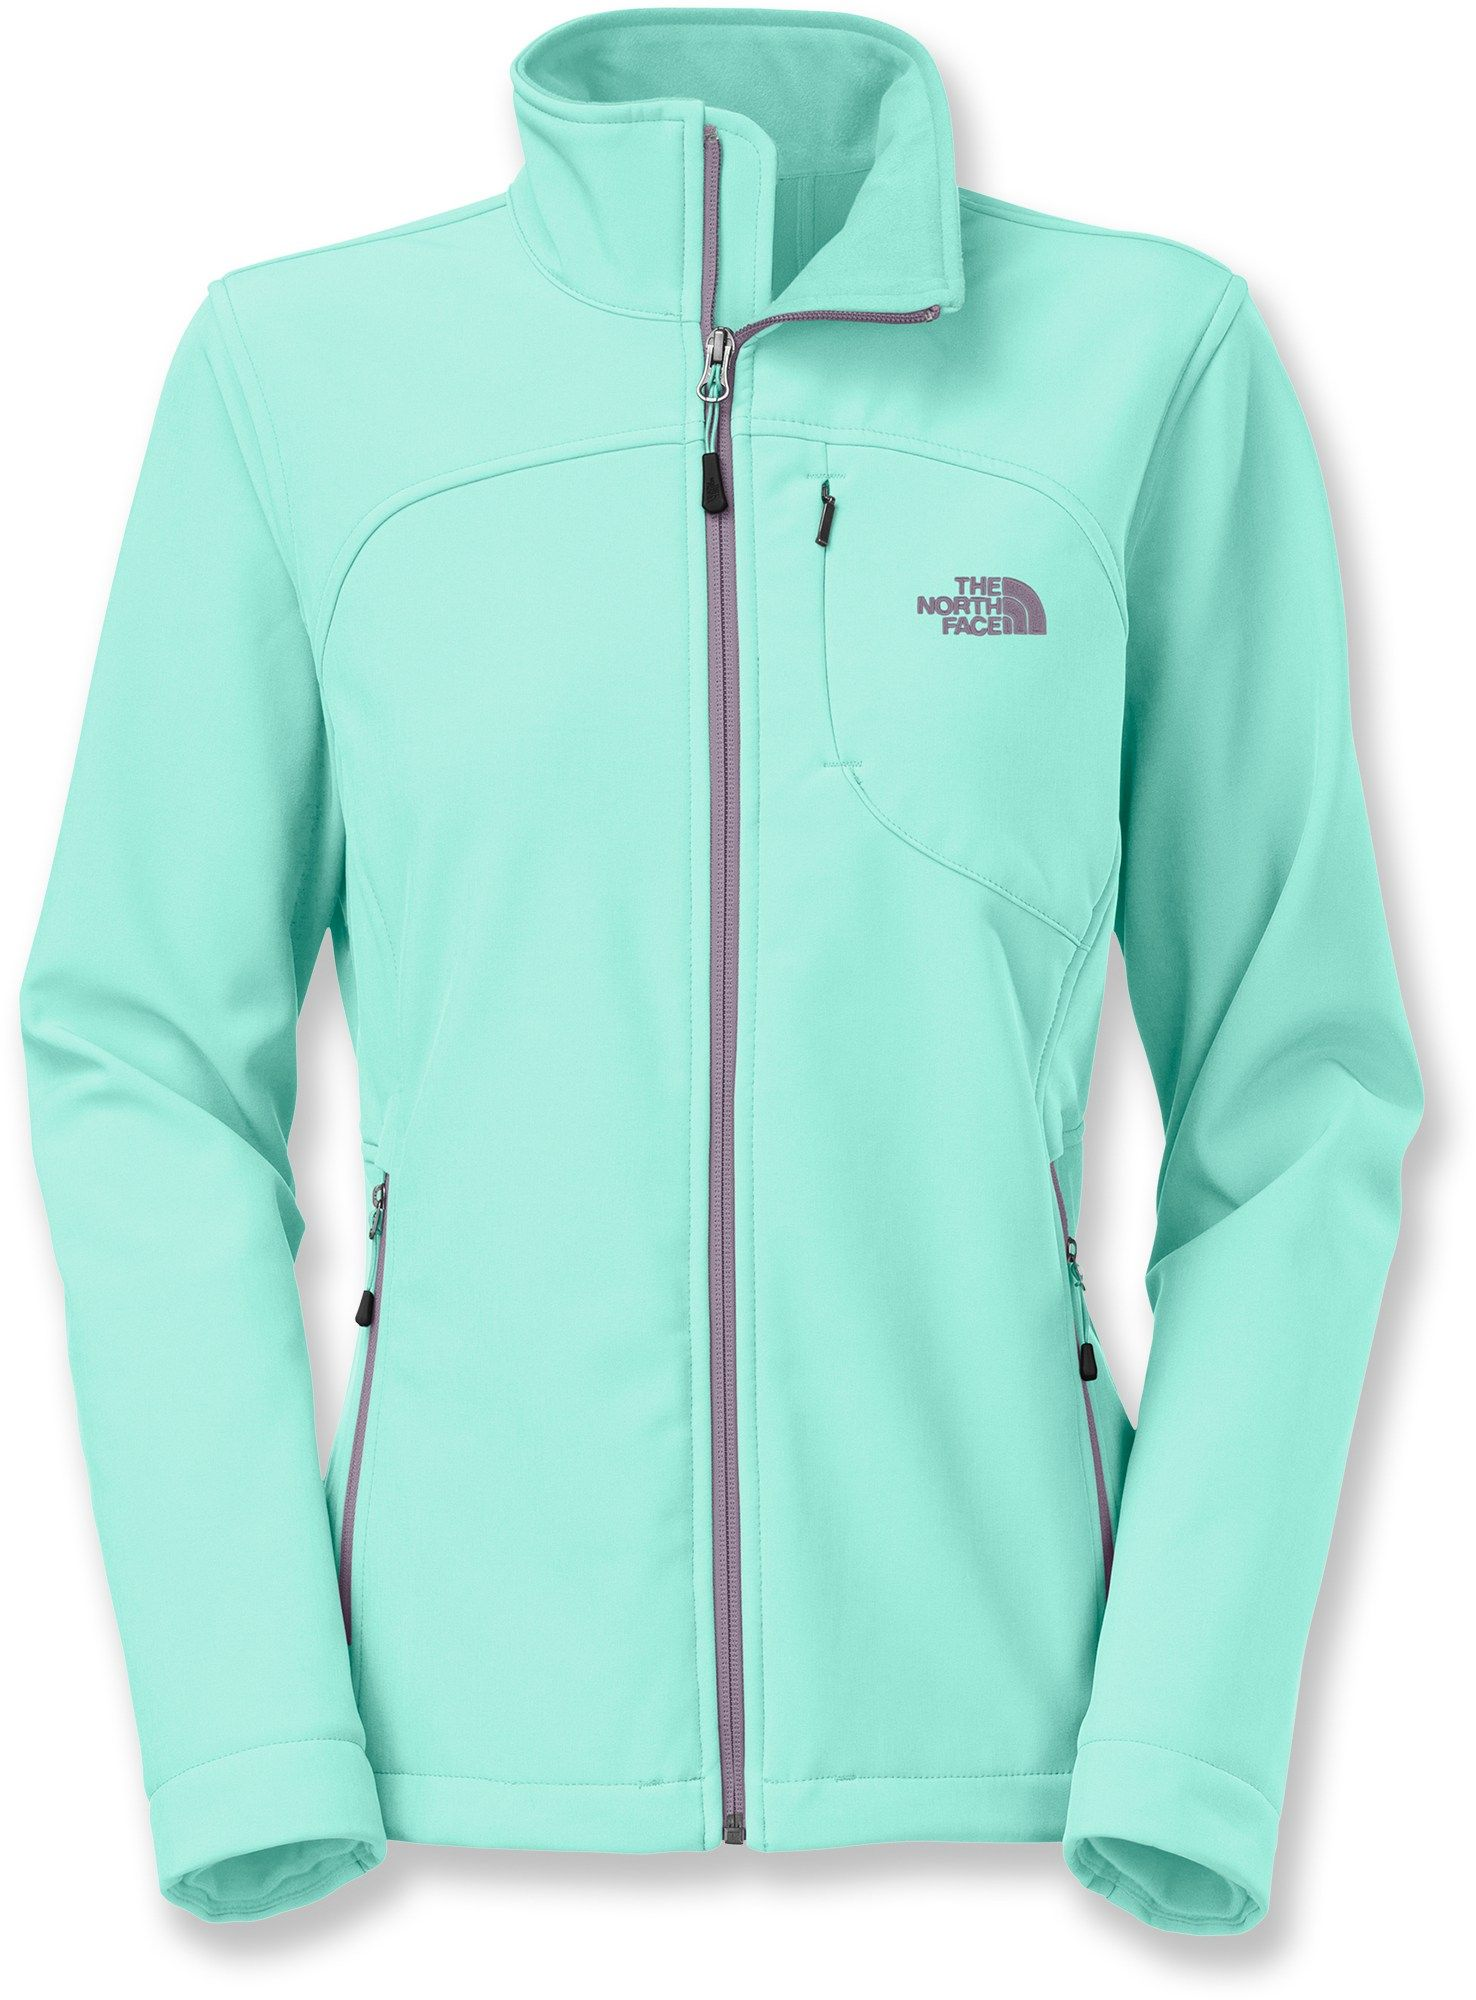 5bf92febd098 The North Face Apex Bionic Jacket - Women s Soft Shell